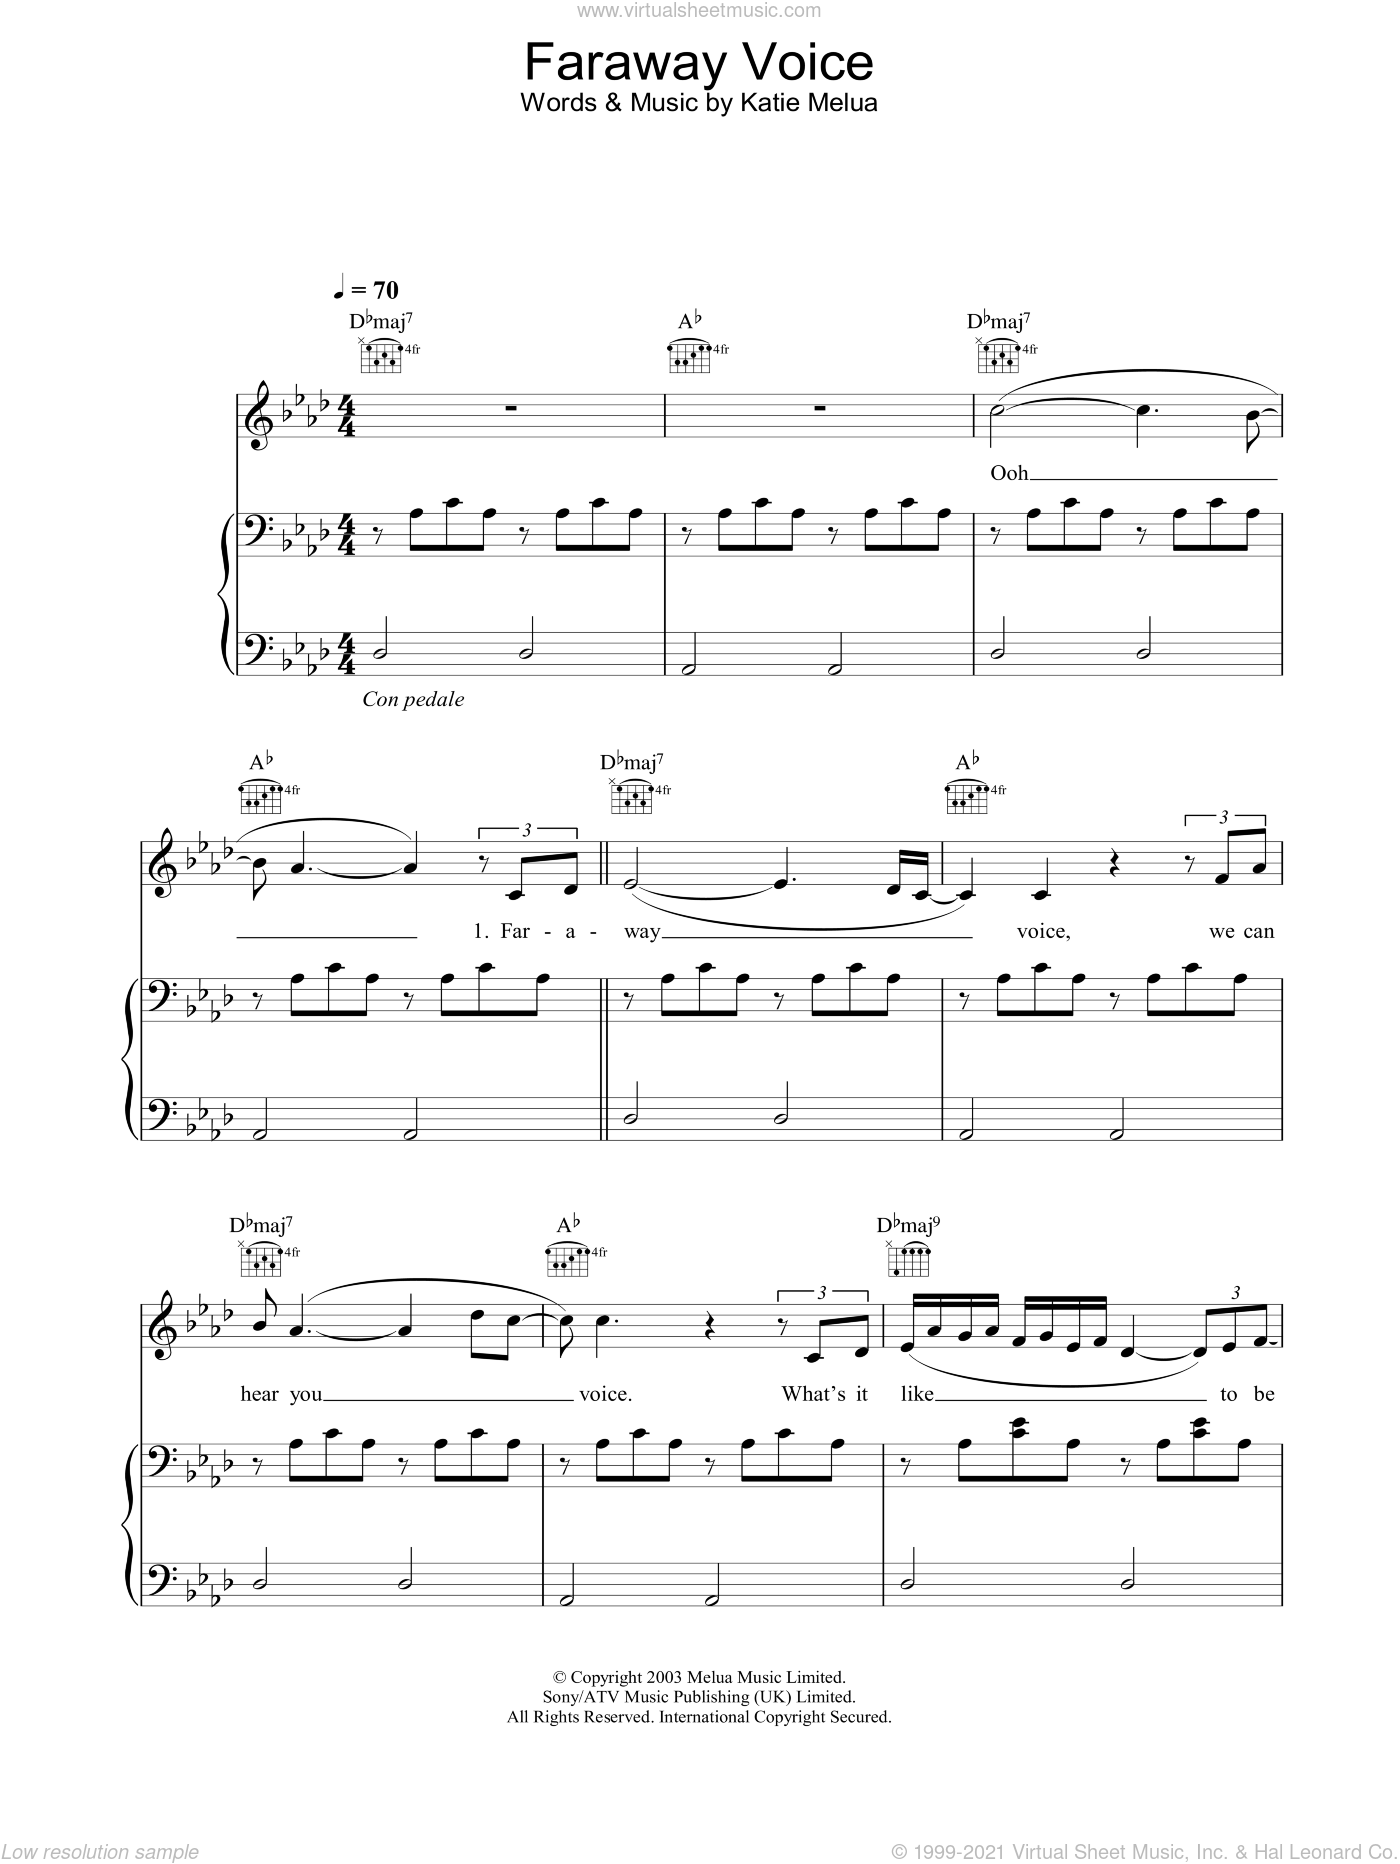 Faraway Voice sheet music for voice, piano or guitar by Katie Melua. Score Image Preview.